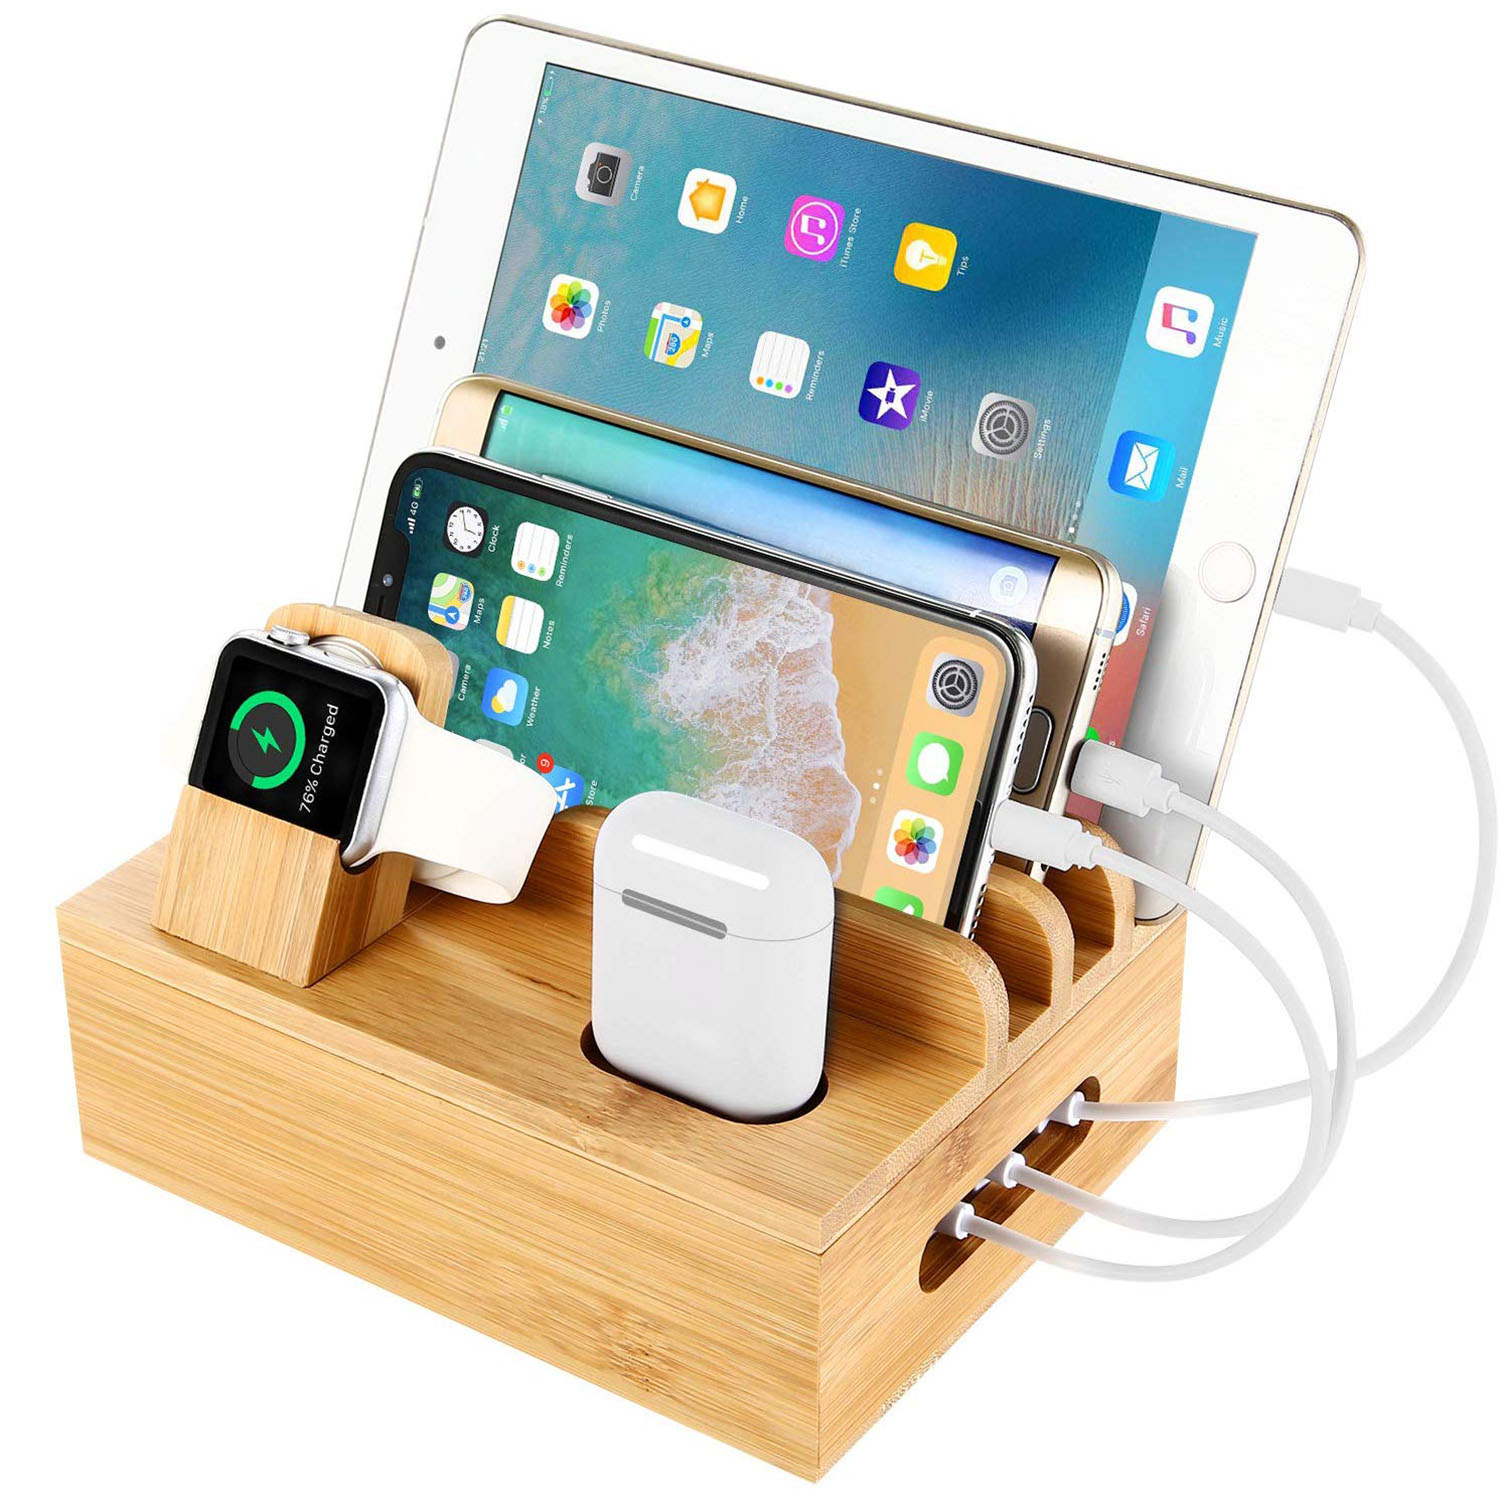 Natural, Stand, Storage, Cellphone, Wood, Watch